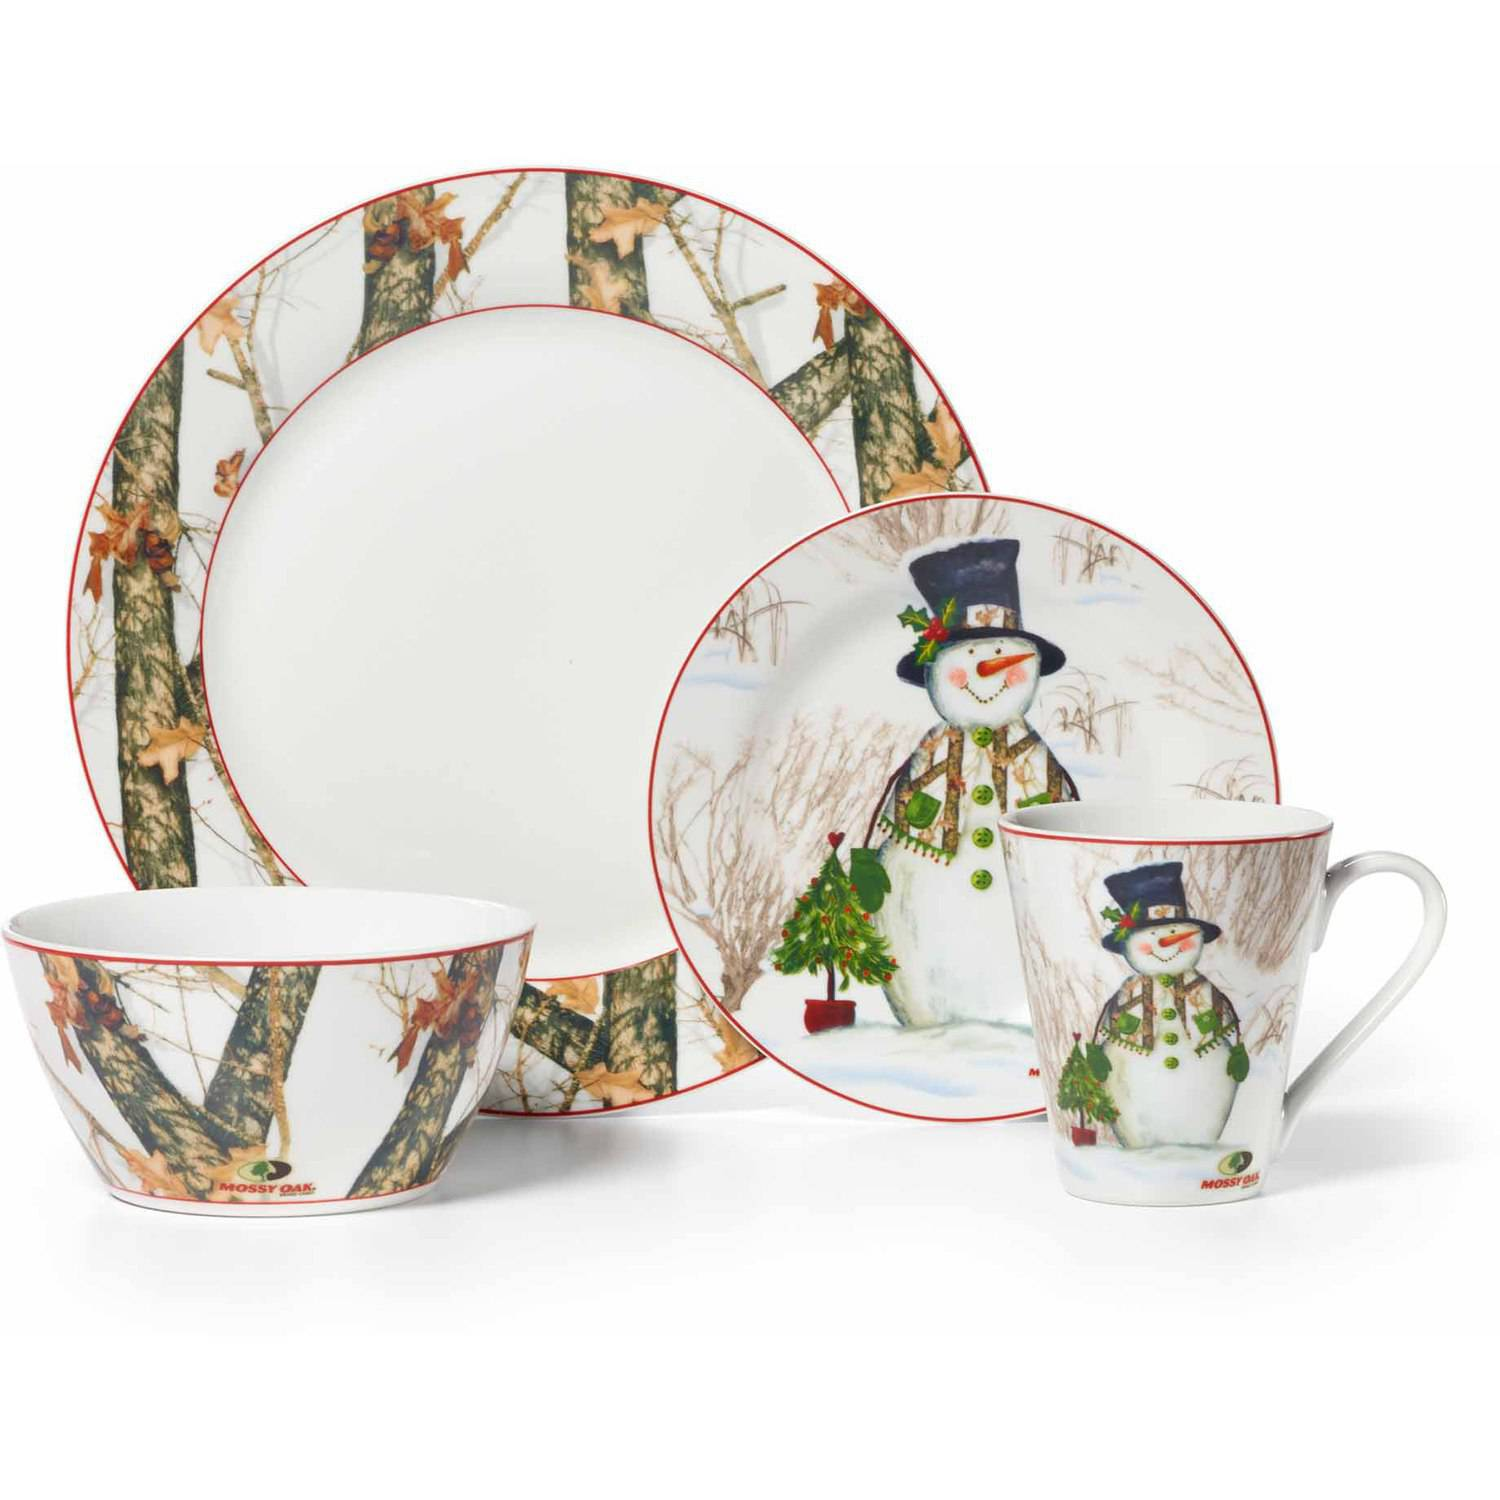 Mossy Oak Break Up Infinity 16-Piece Dinnerware Set, Holiday Snowman